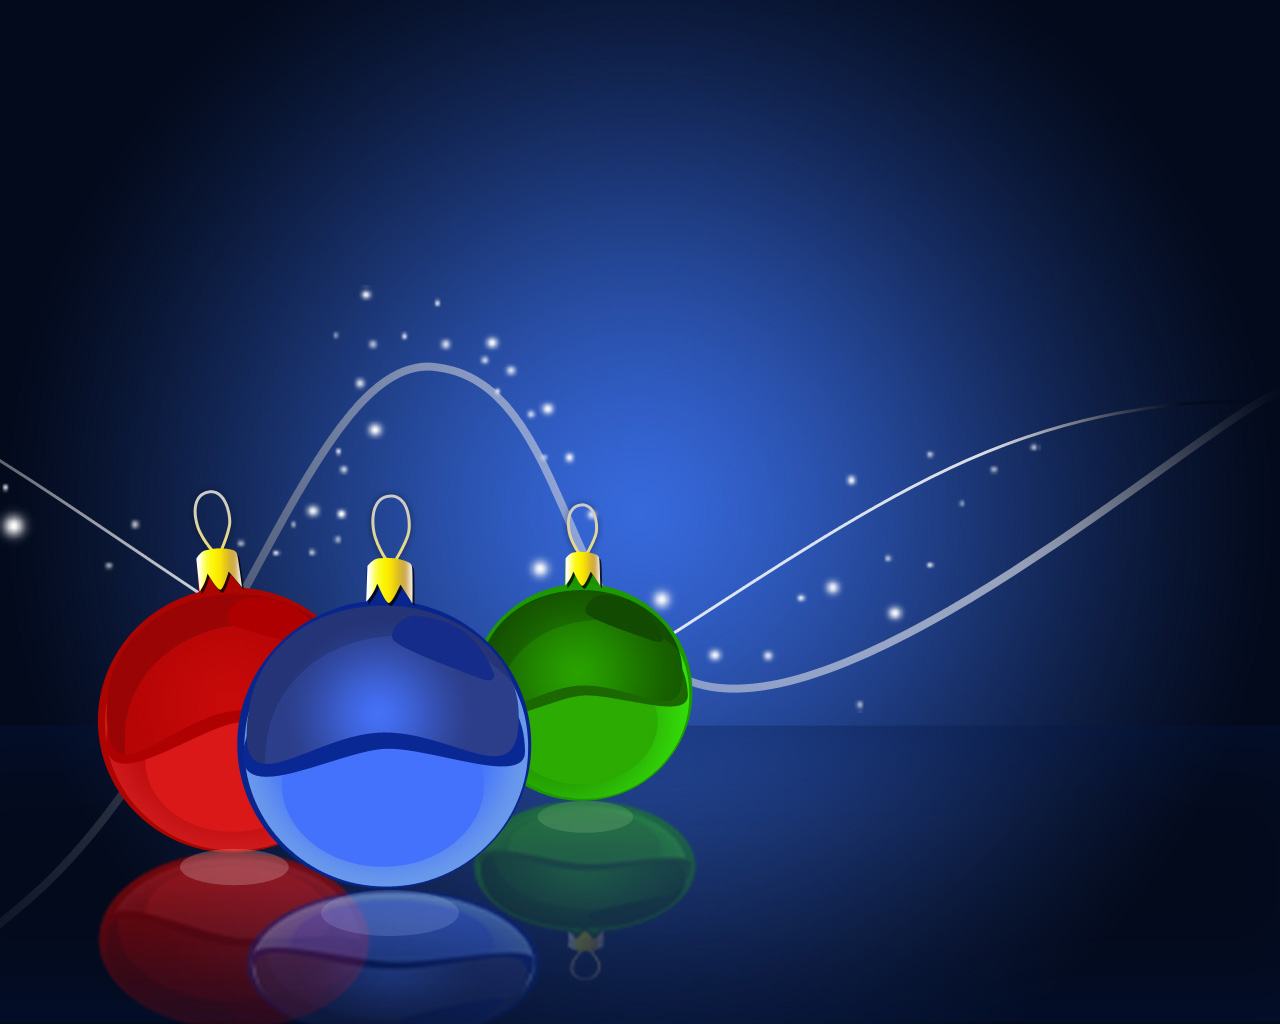 at Home Christmas wallpaper backgrounds christmas wallpaper 1280x1024